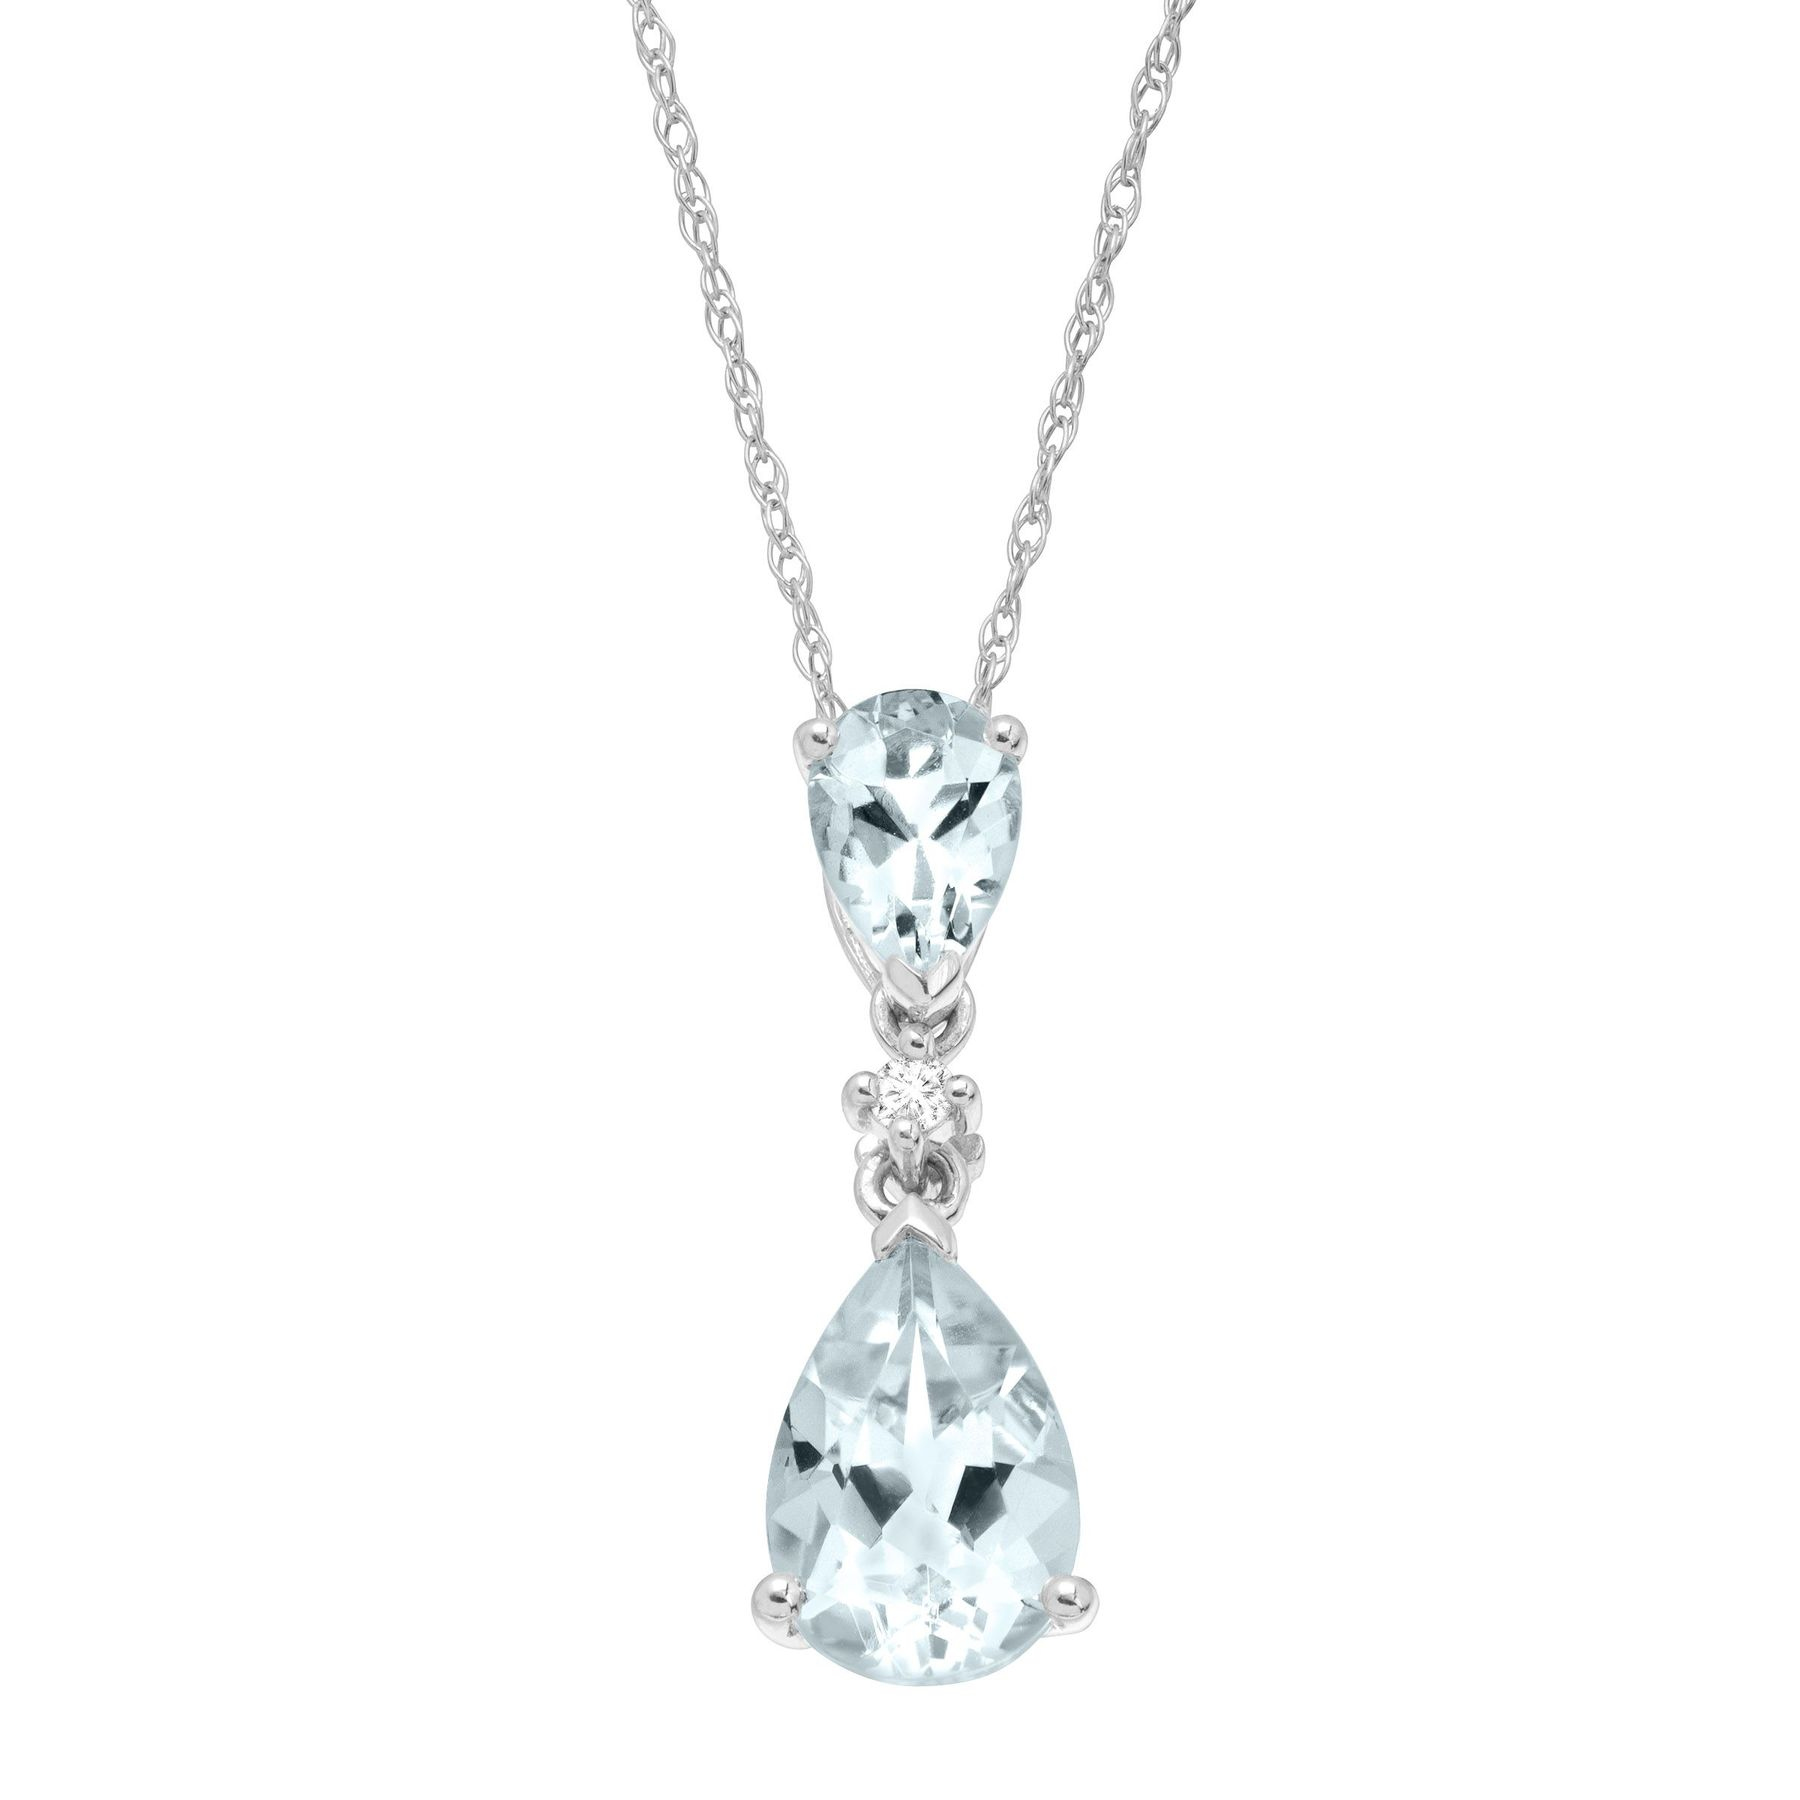 com mackney with web dina artisanal oval edge pendant dinamackney aquamarine